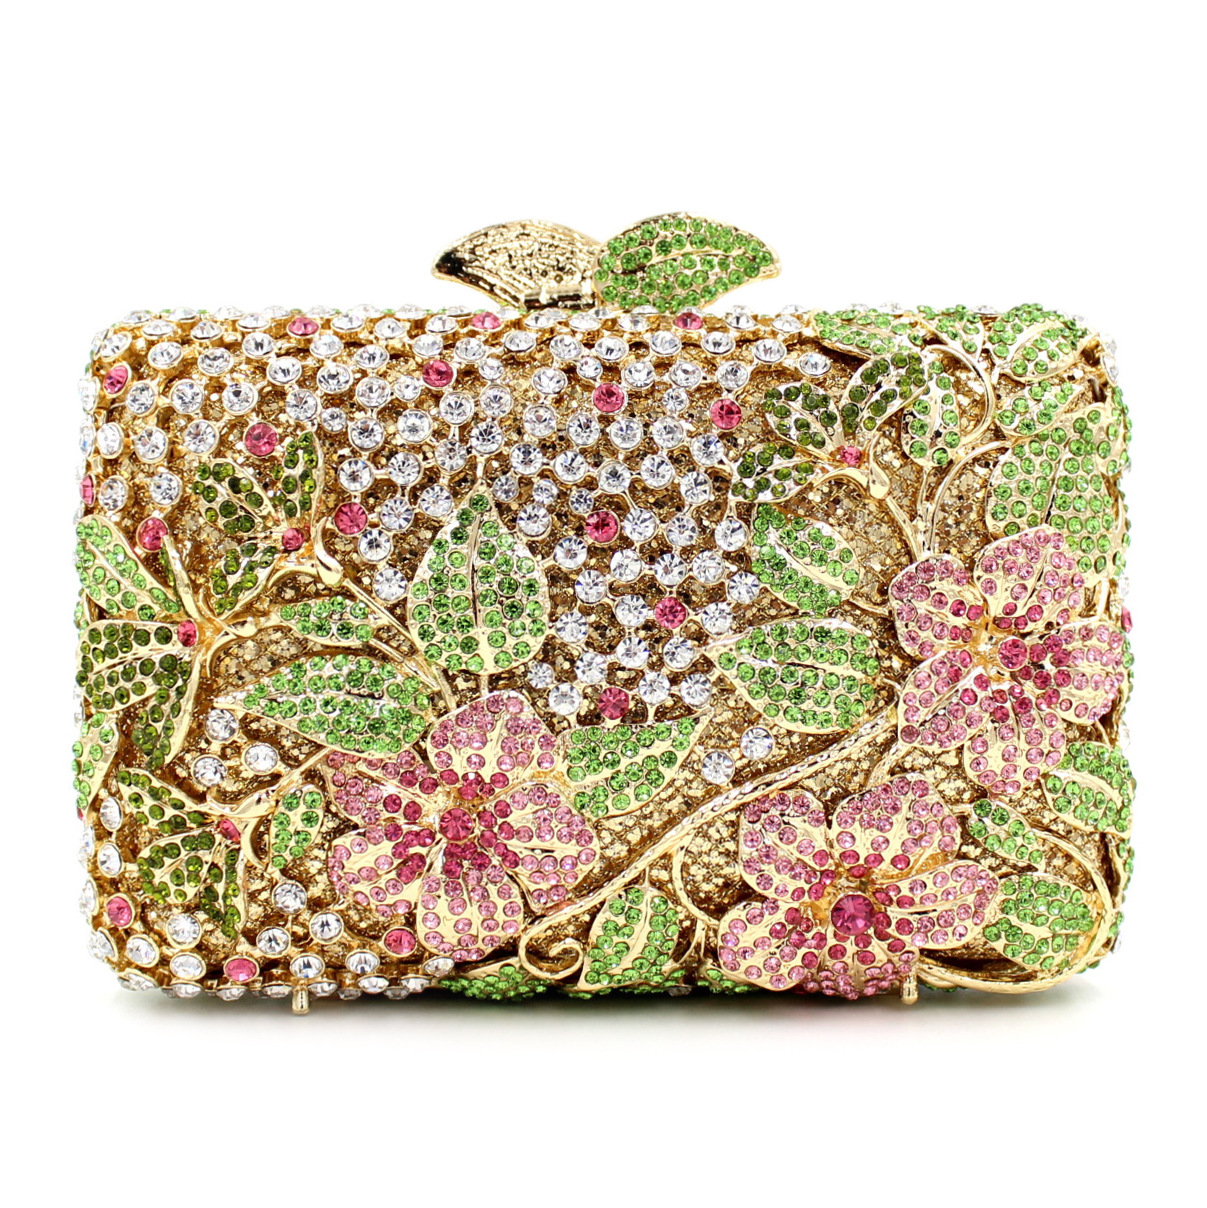 Both Side Handmade Diamond Flower Crystal Evening Bag Clutch Bags Upscale Styling party Day Clutches Lady Wedding mini Purse new single side figer diamond crystal evening bags clutch rhinestones handbag hot styling day clutches lady wedding women purse